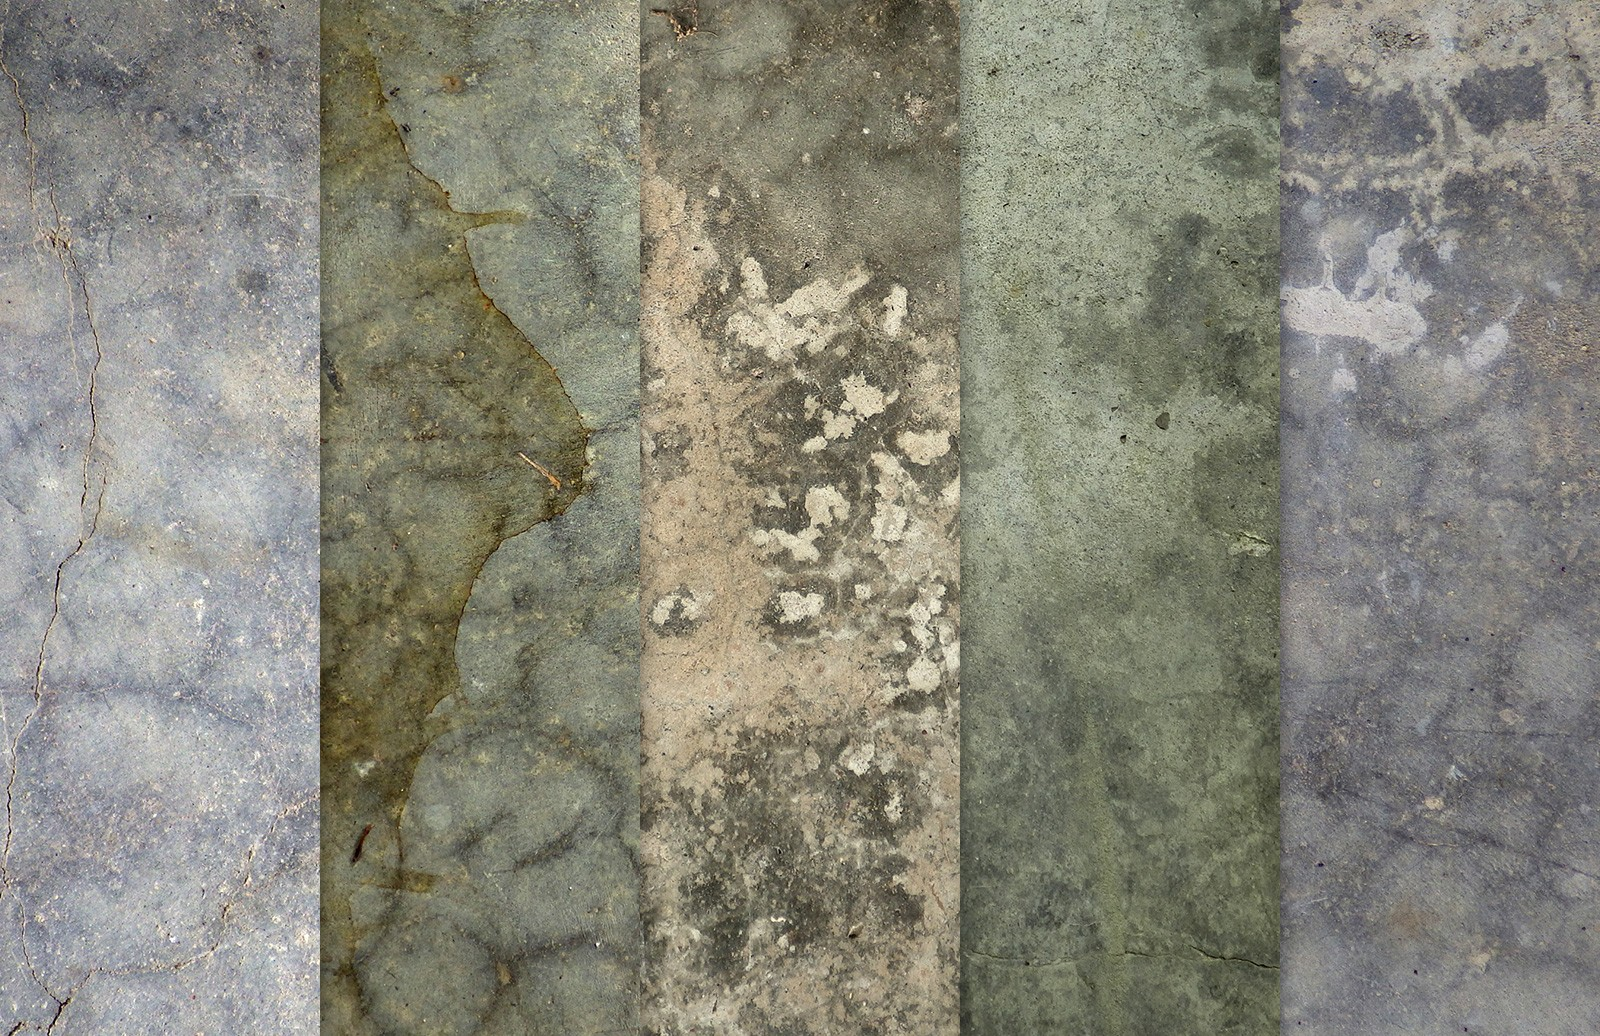 Large Stained Concrete Floor Textures Preview 2. Stained Concrete Floor Textures   Medialoot